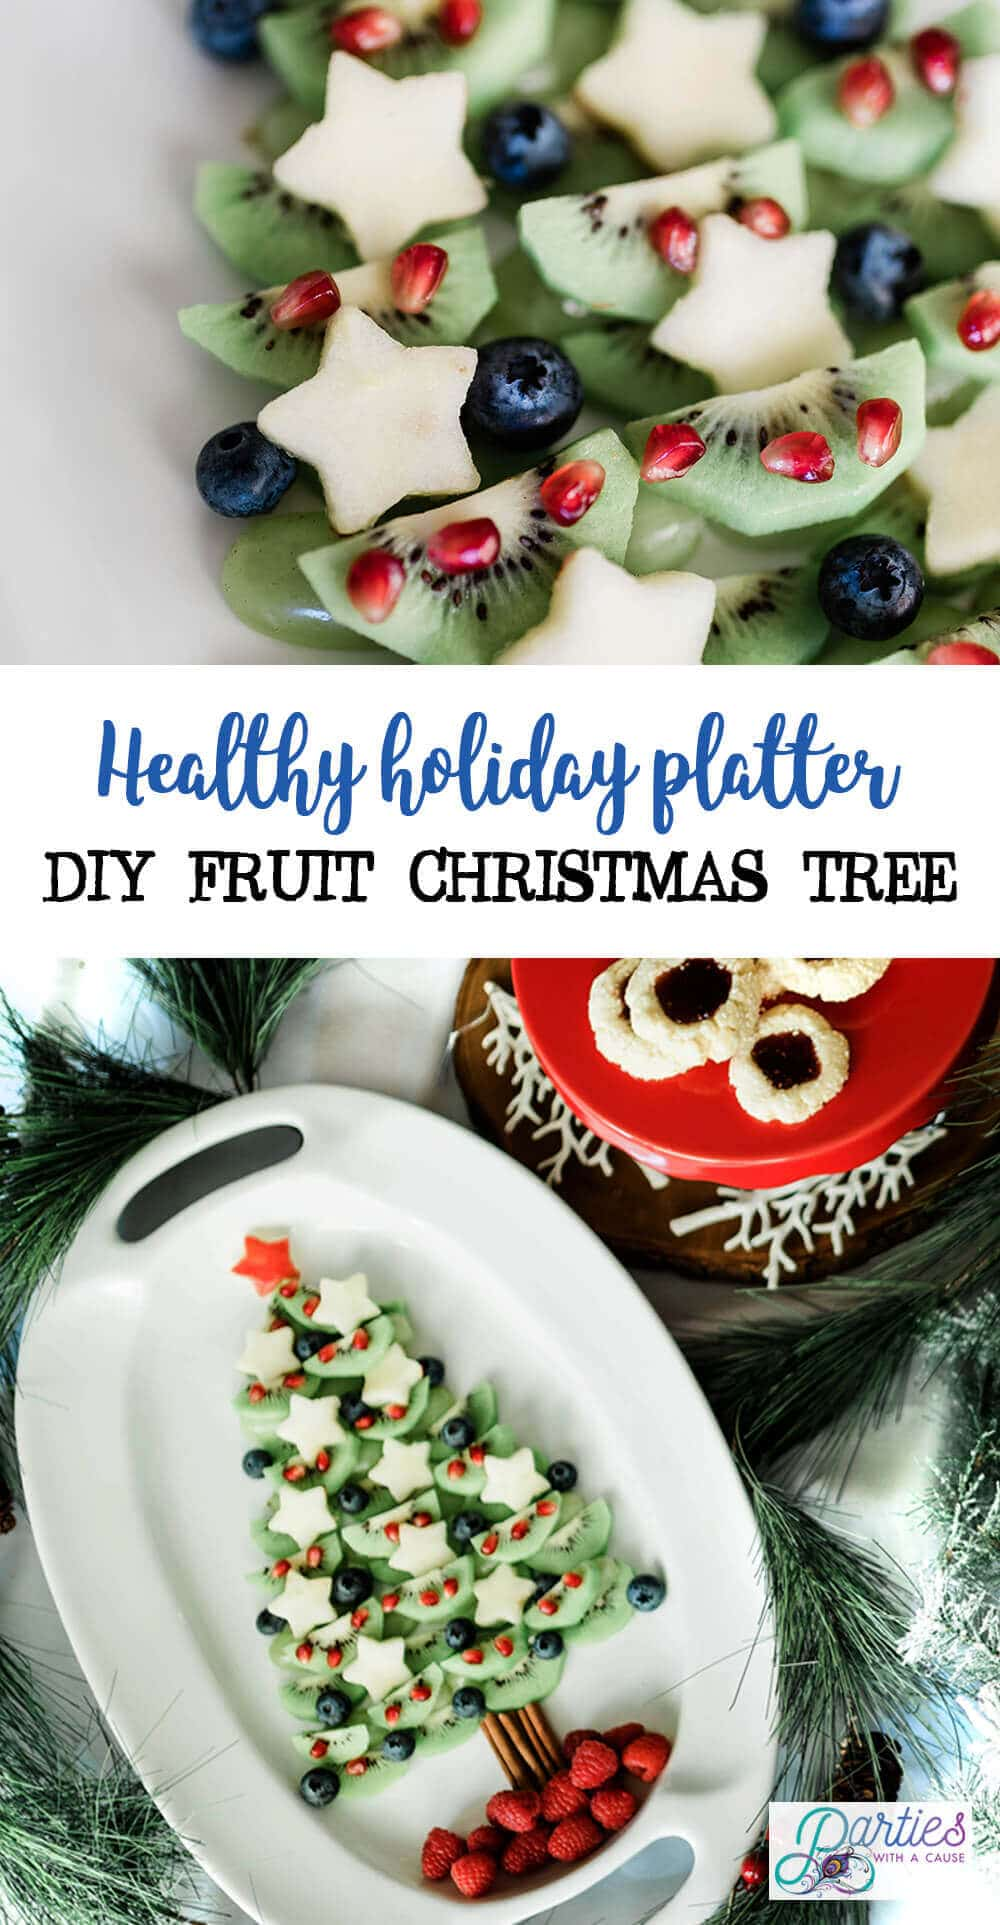 Healthy Holiday platter DIY fruit Christmas tree